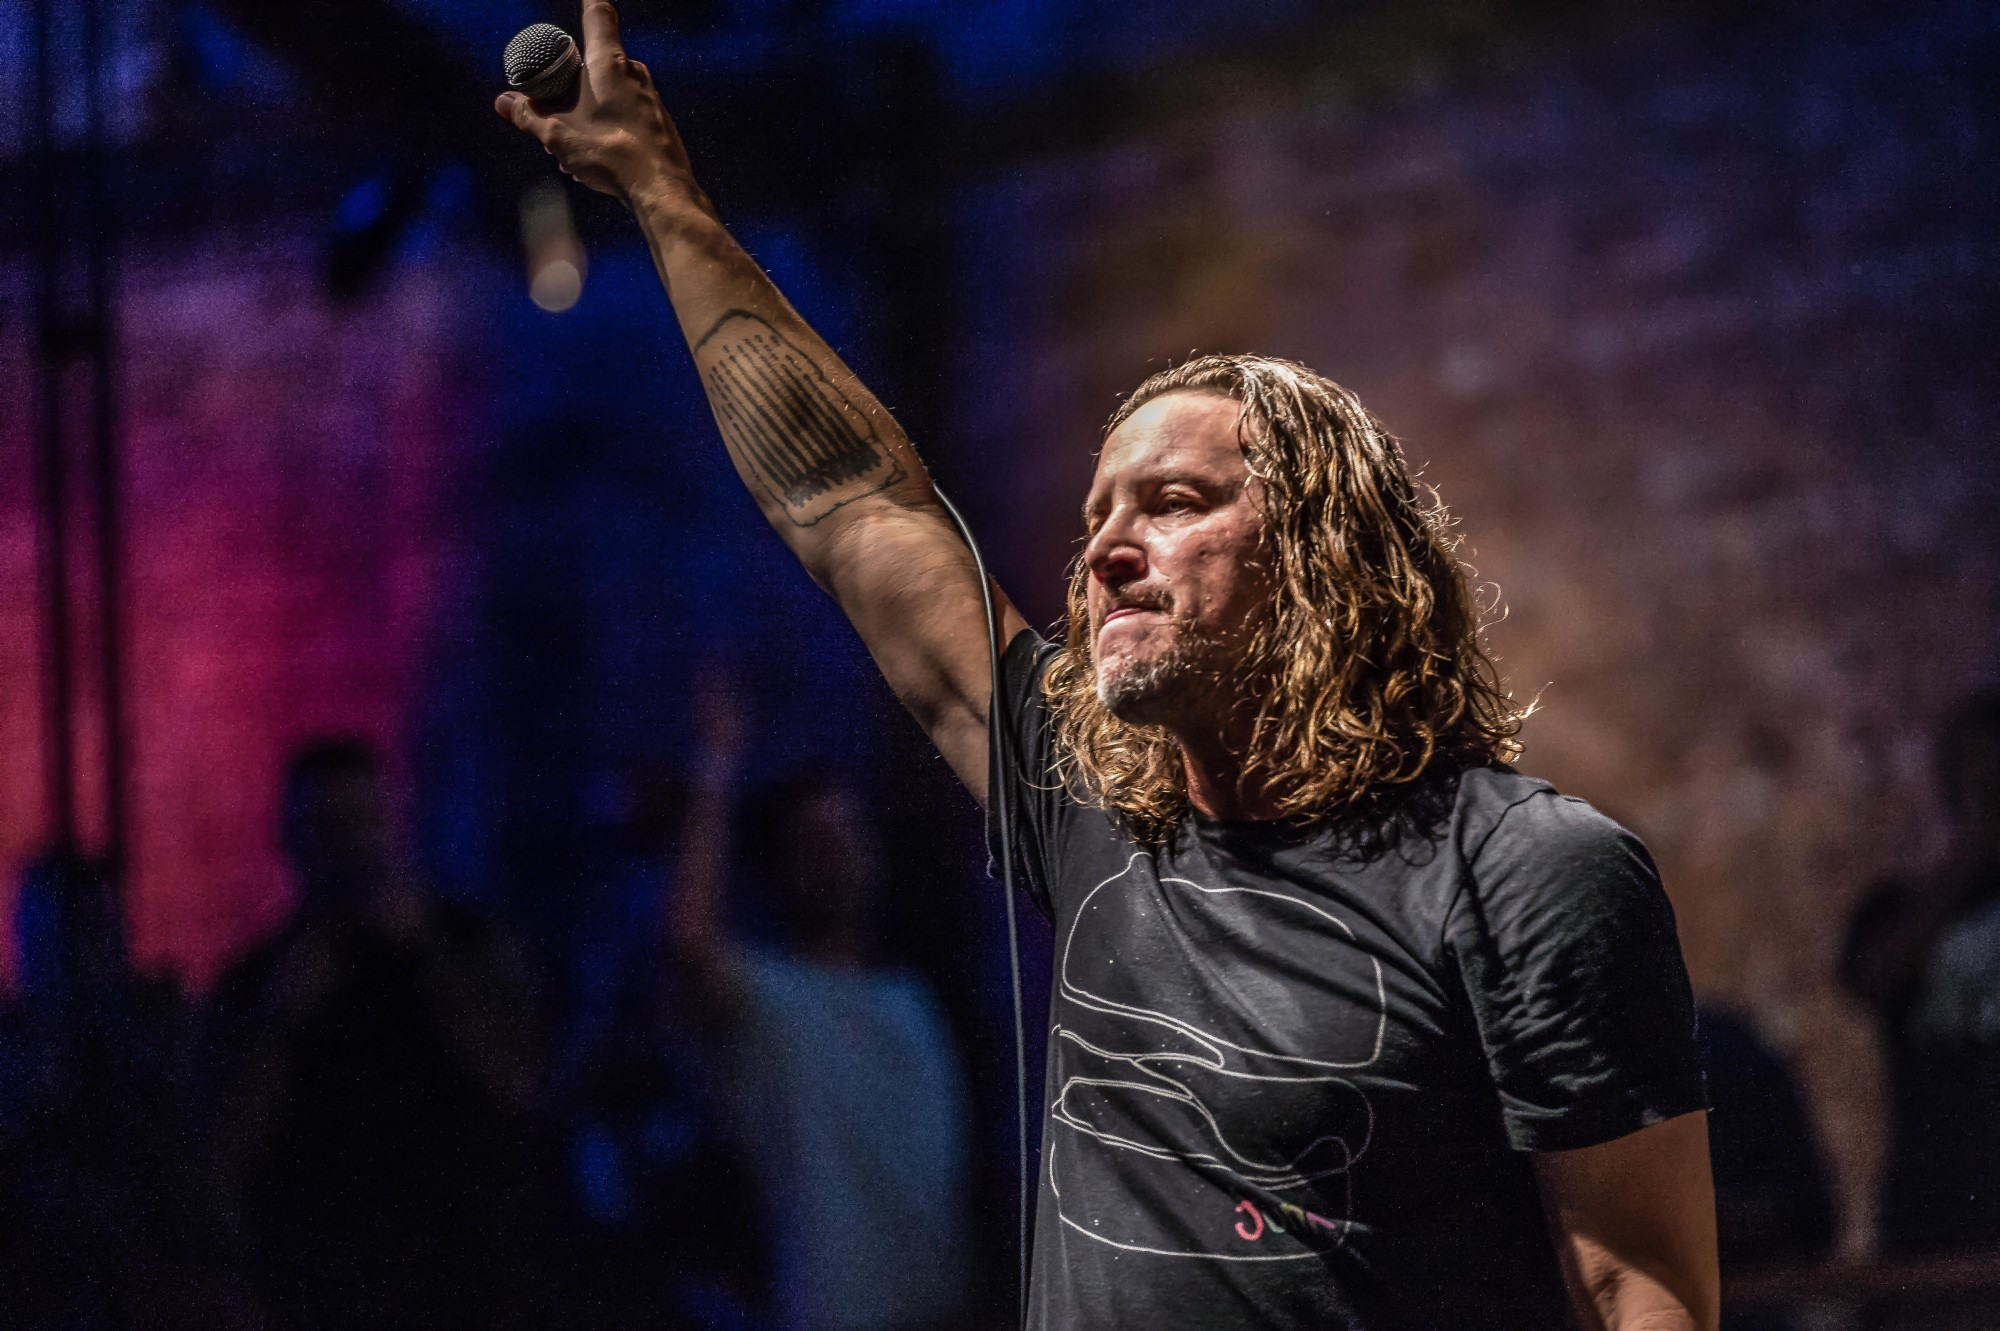 INTERVIEW: Kevin Martin of Candlebox